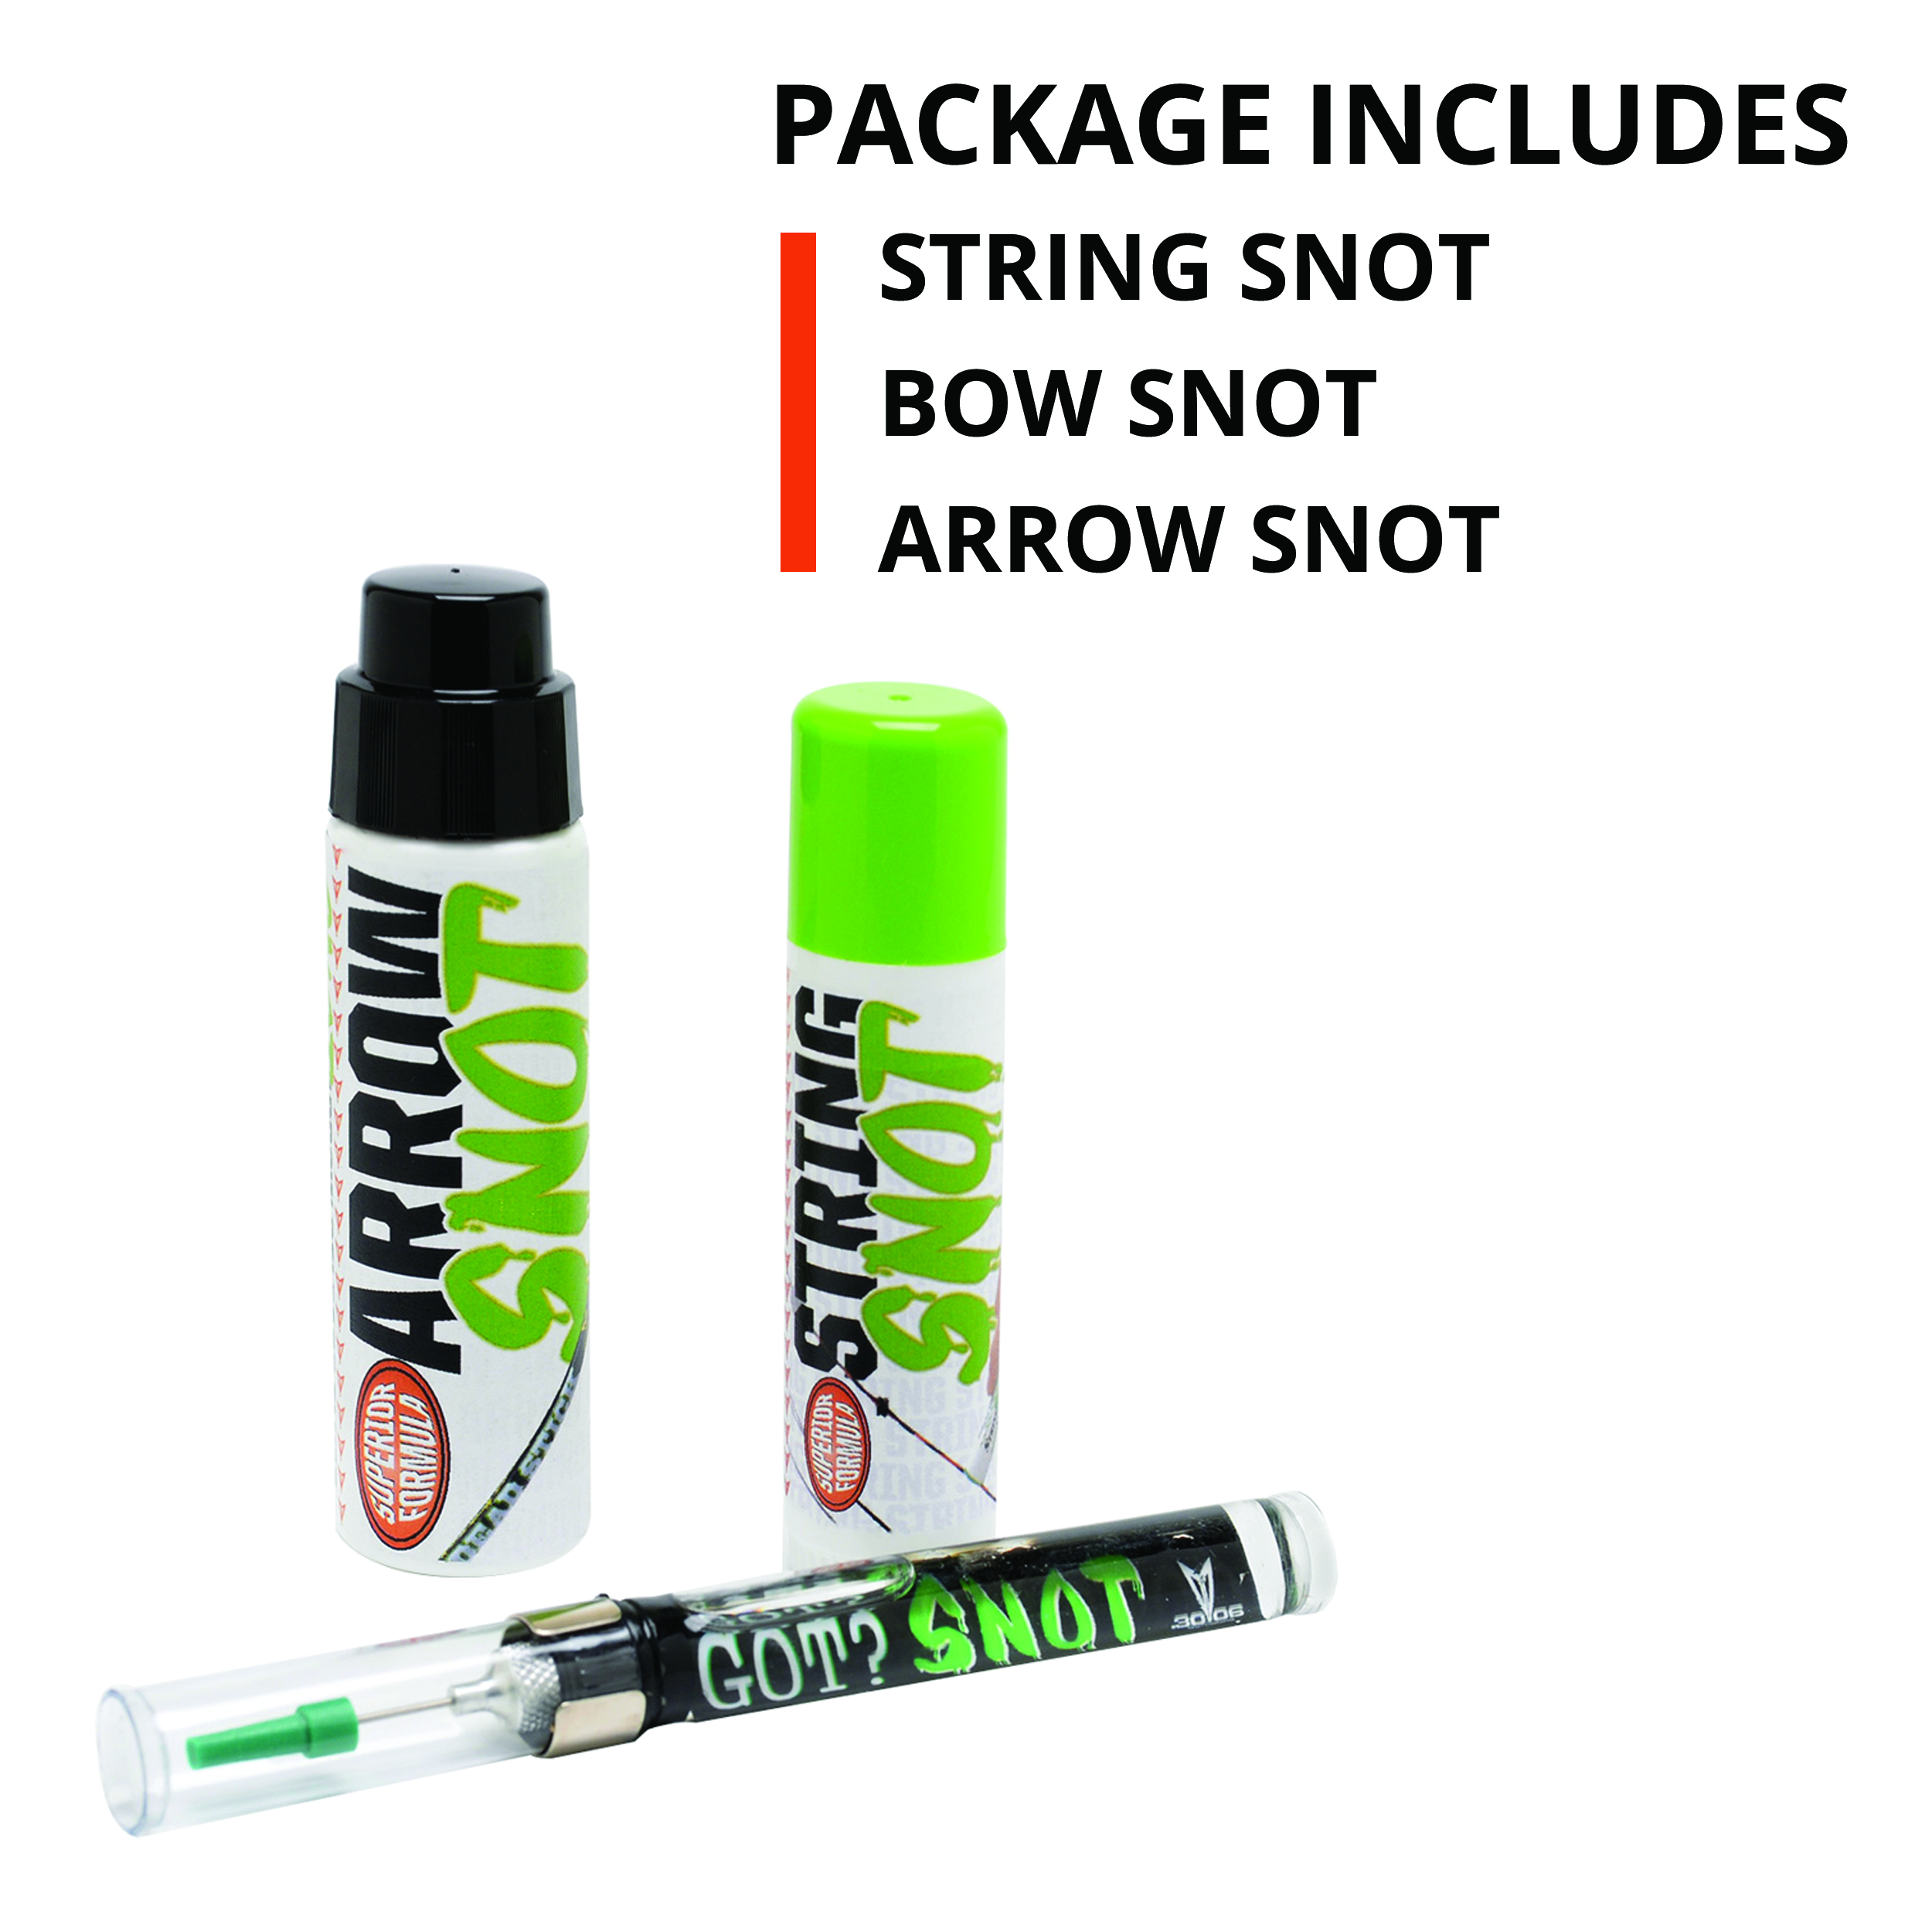 Authorized Dealer 30-06 OUTDOORS Compound Bow SNOT Combo Pack CS3P-1